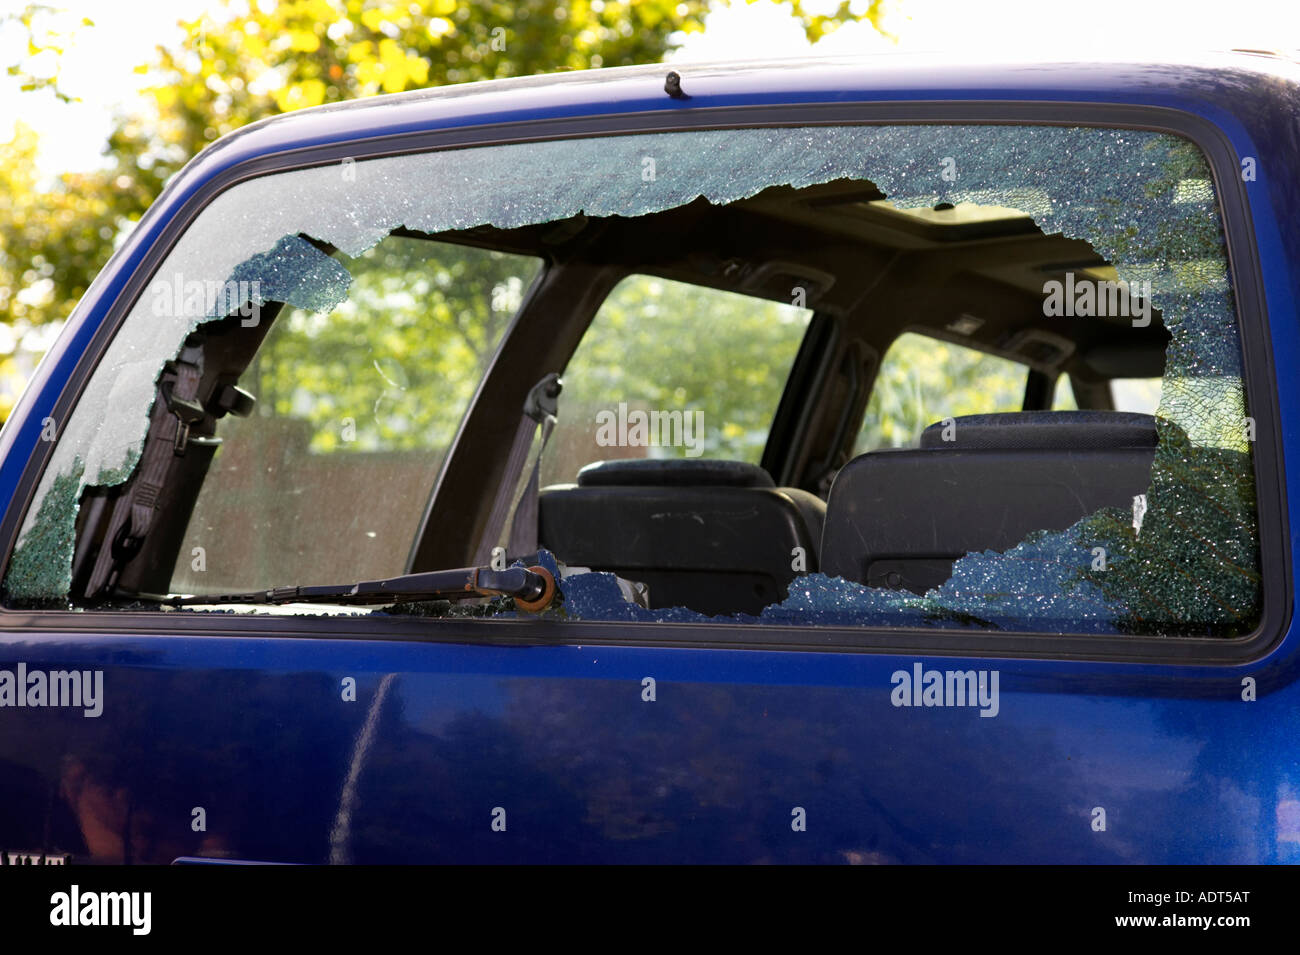 broken rear window of blue renault car smashed by vandals - Stock Image